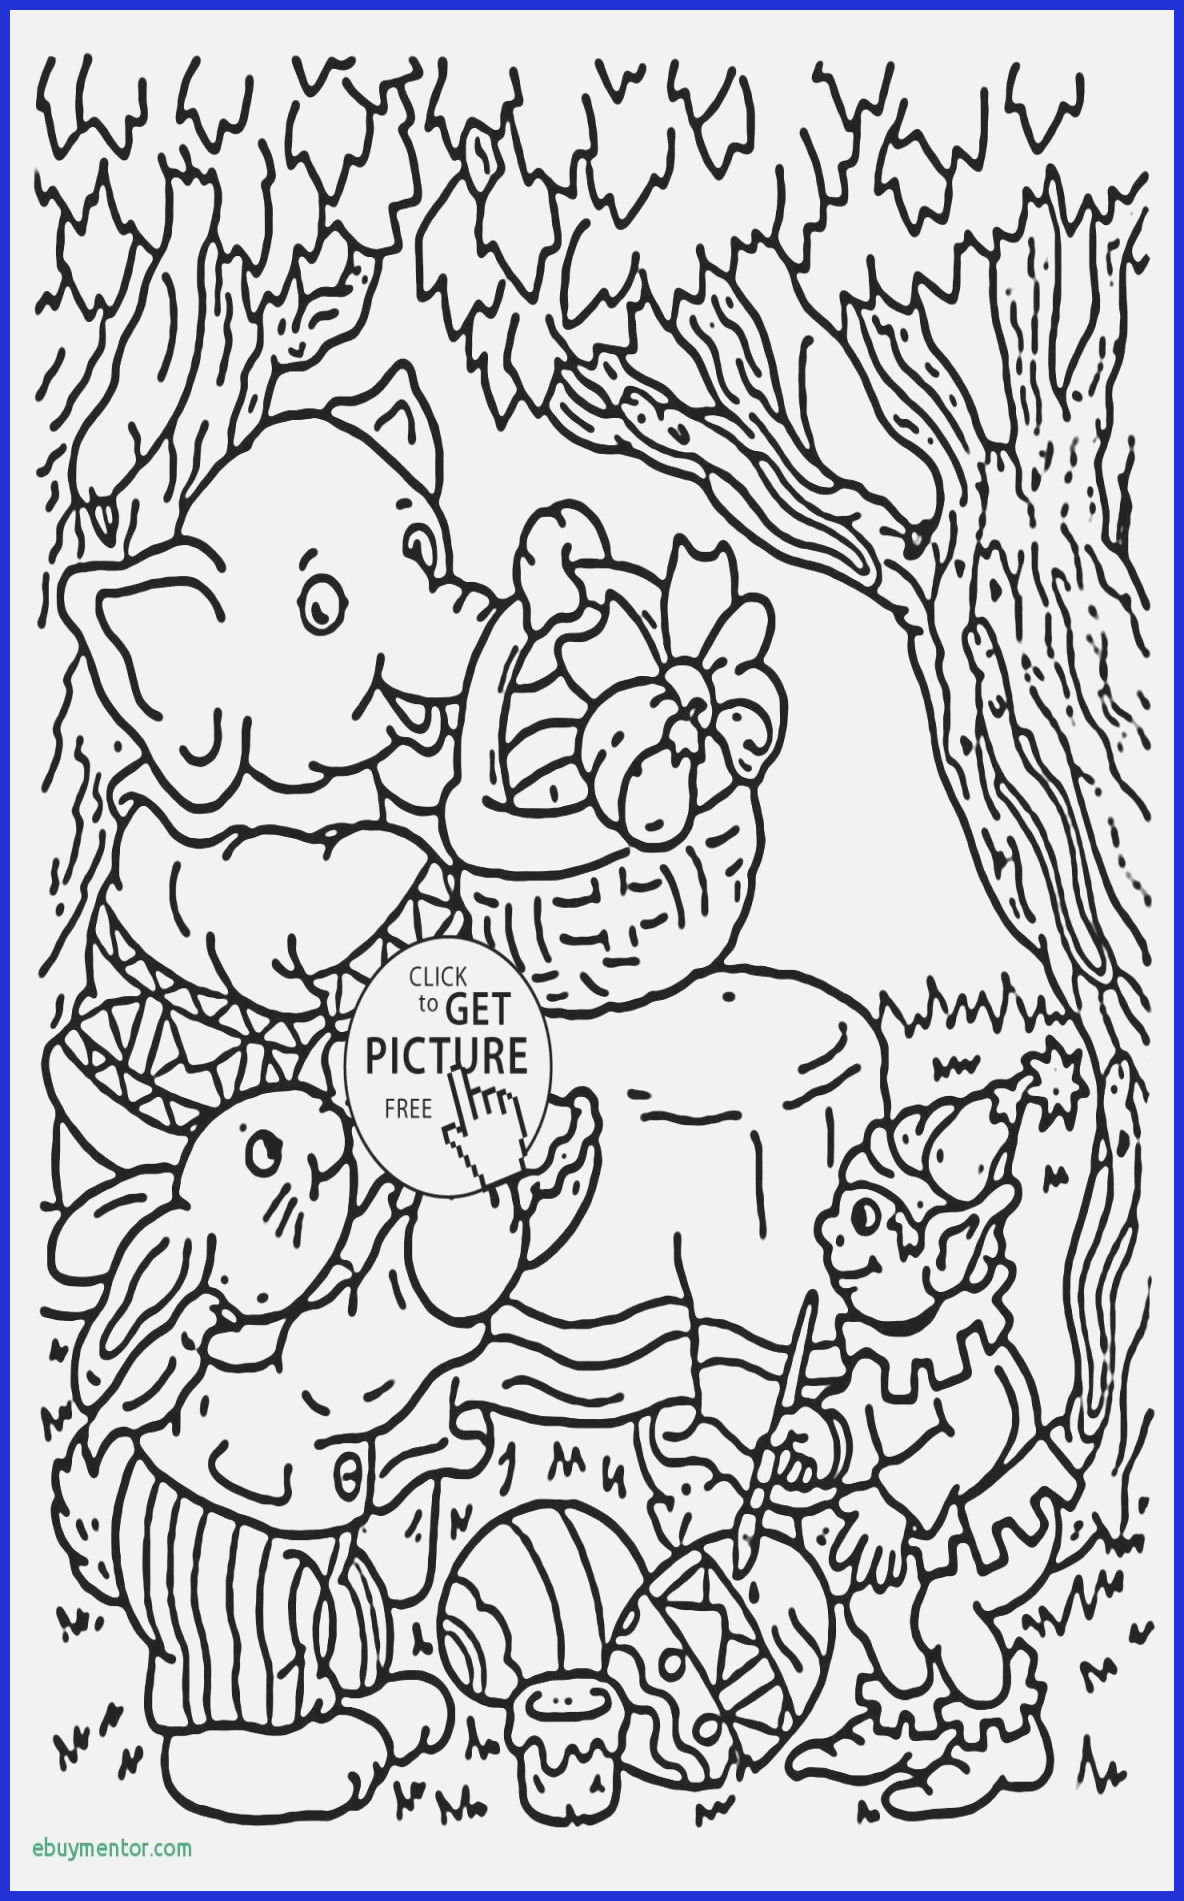 Word Search Coloring Pages Coloring Ideas Dental Coloring Pages Word Search Puzzles For Kids